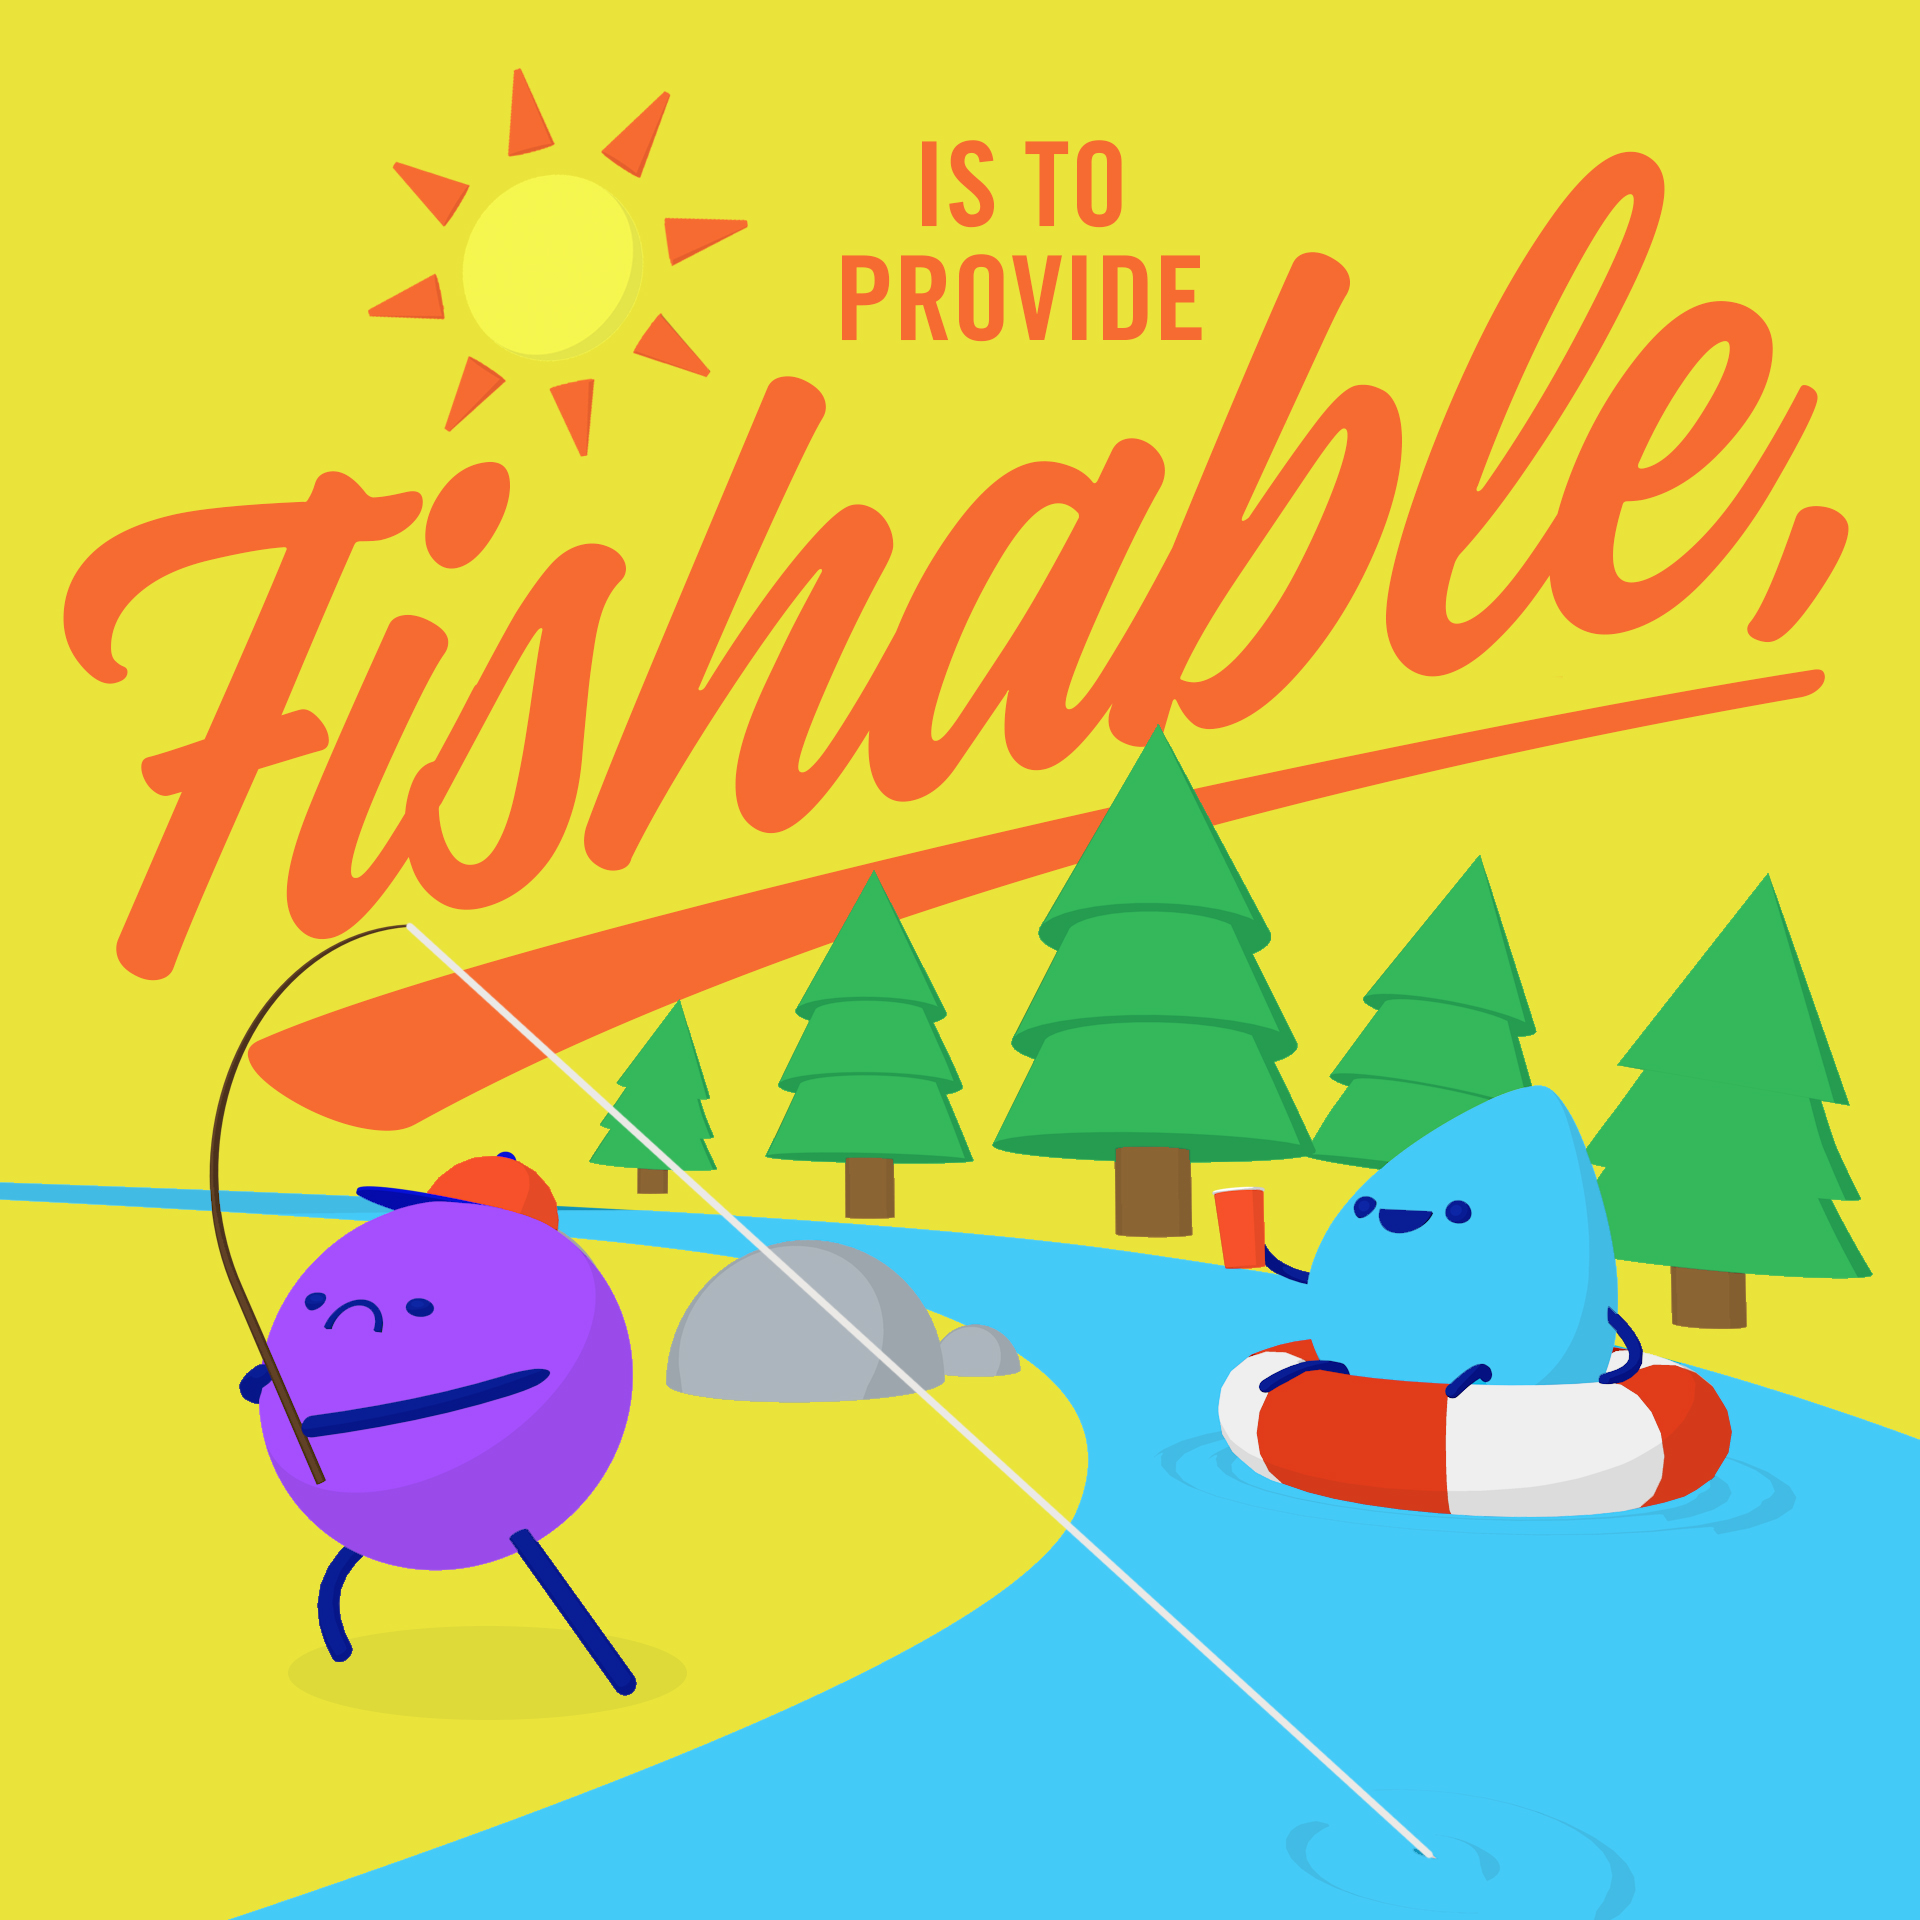 Jimmy and Droppy playing in river with text that reads 'is to provide fishable,'